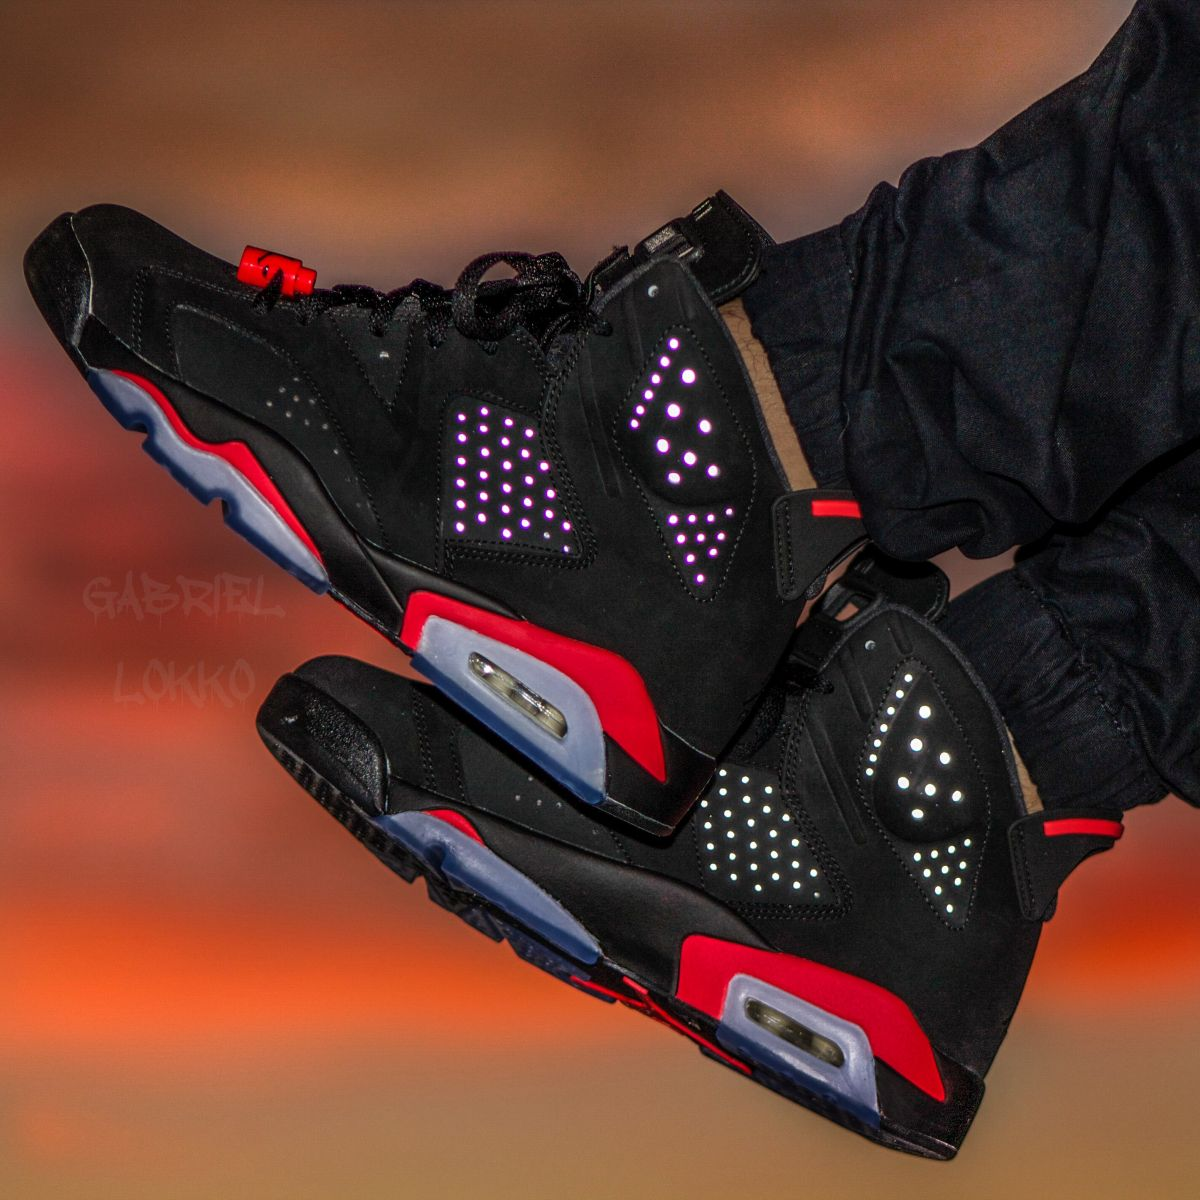 Air Jordan 6 'Black/Infrared'